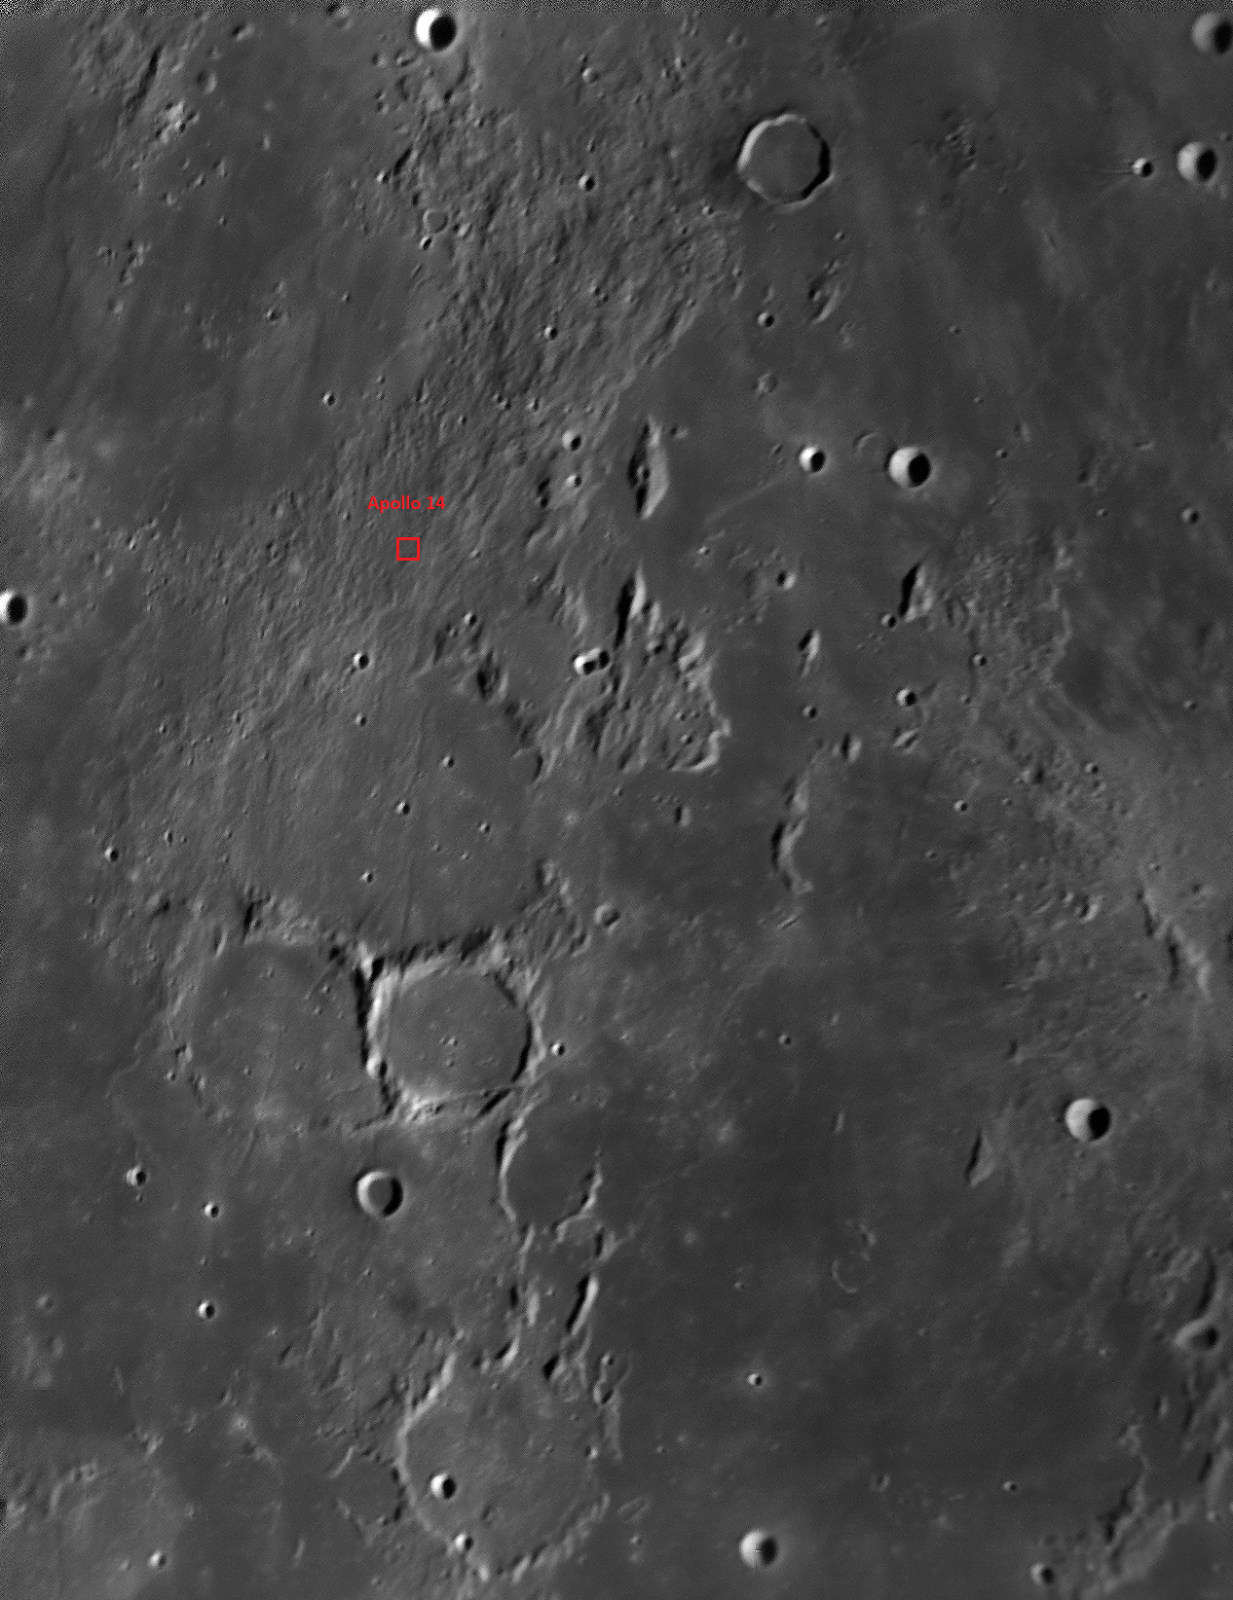 Apollo 14 Moon_20200105_181500_g4_ap2016 R6 gl 3x100 3x50 0,090 pop crop.png